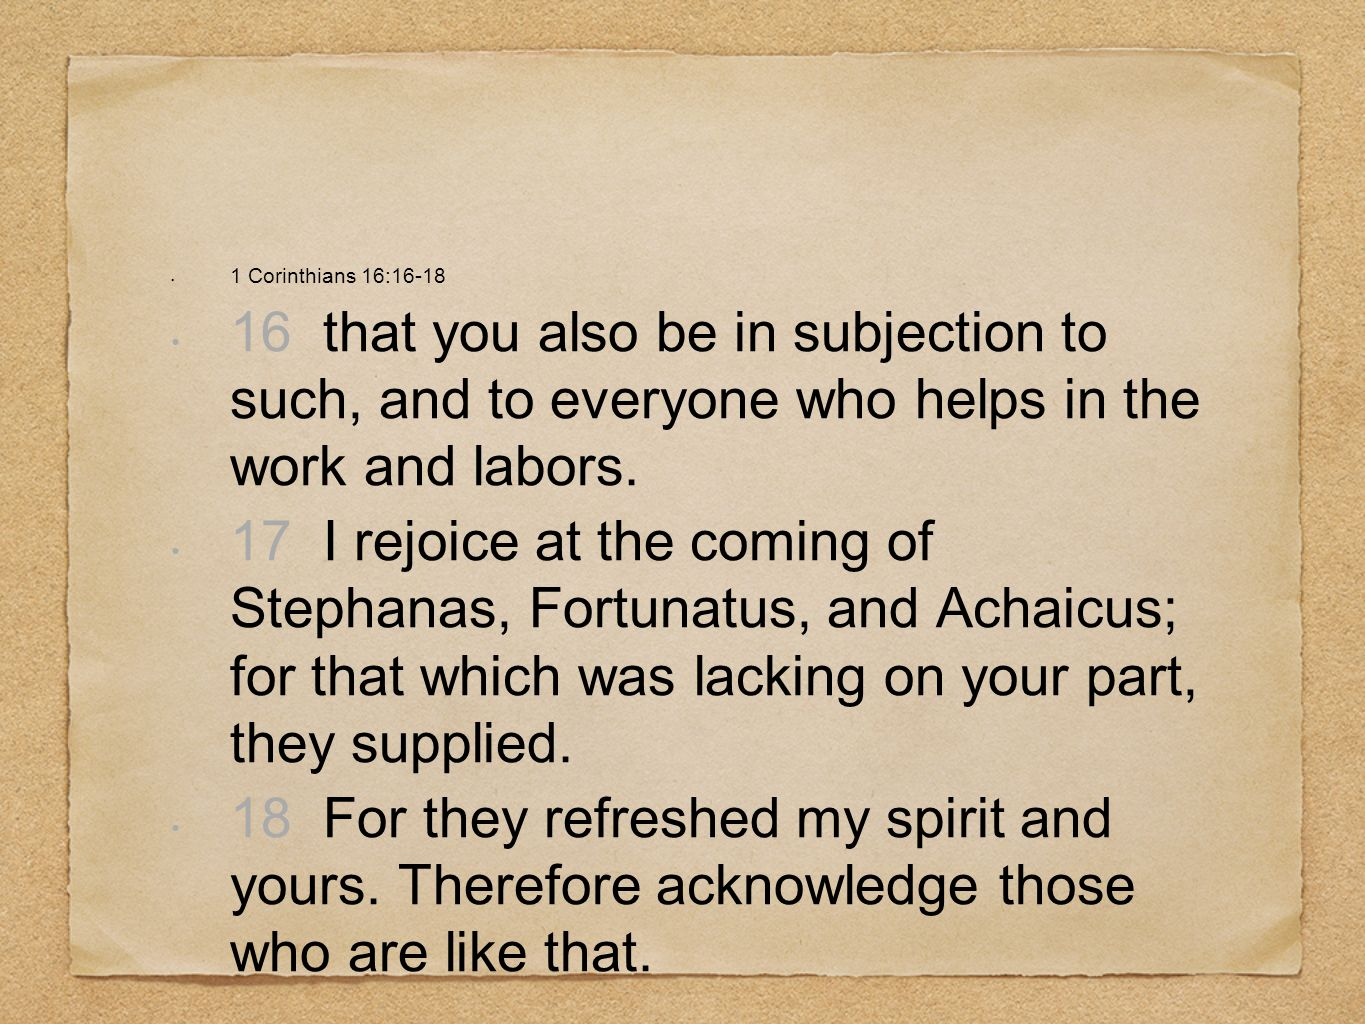 1 Corinthians 16:16-1816 that you also be in subjection to such, and to everyone who helps in the work and labors.